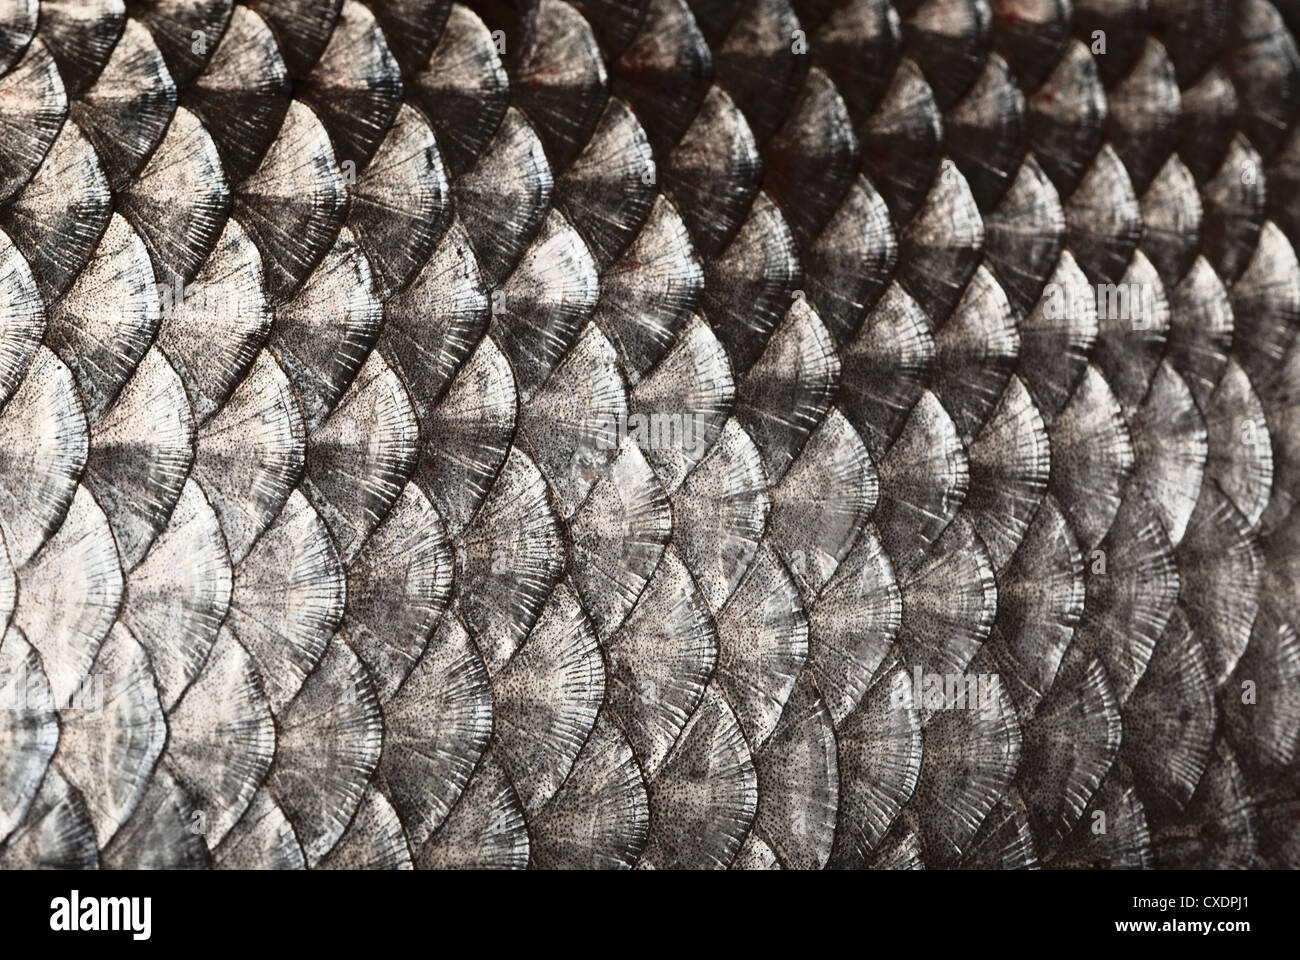 Fish scales background - Stock Image